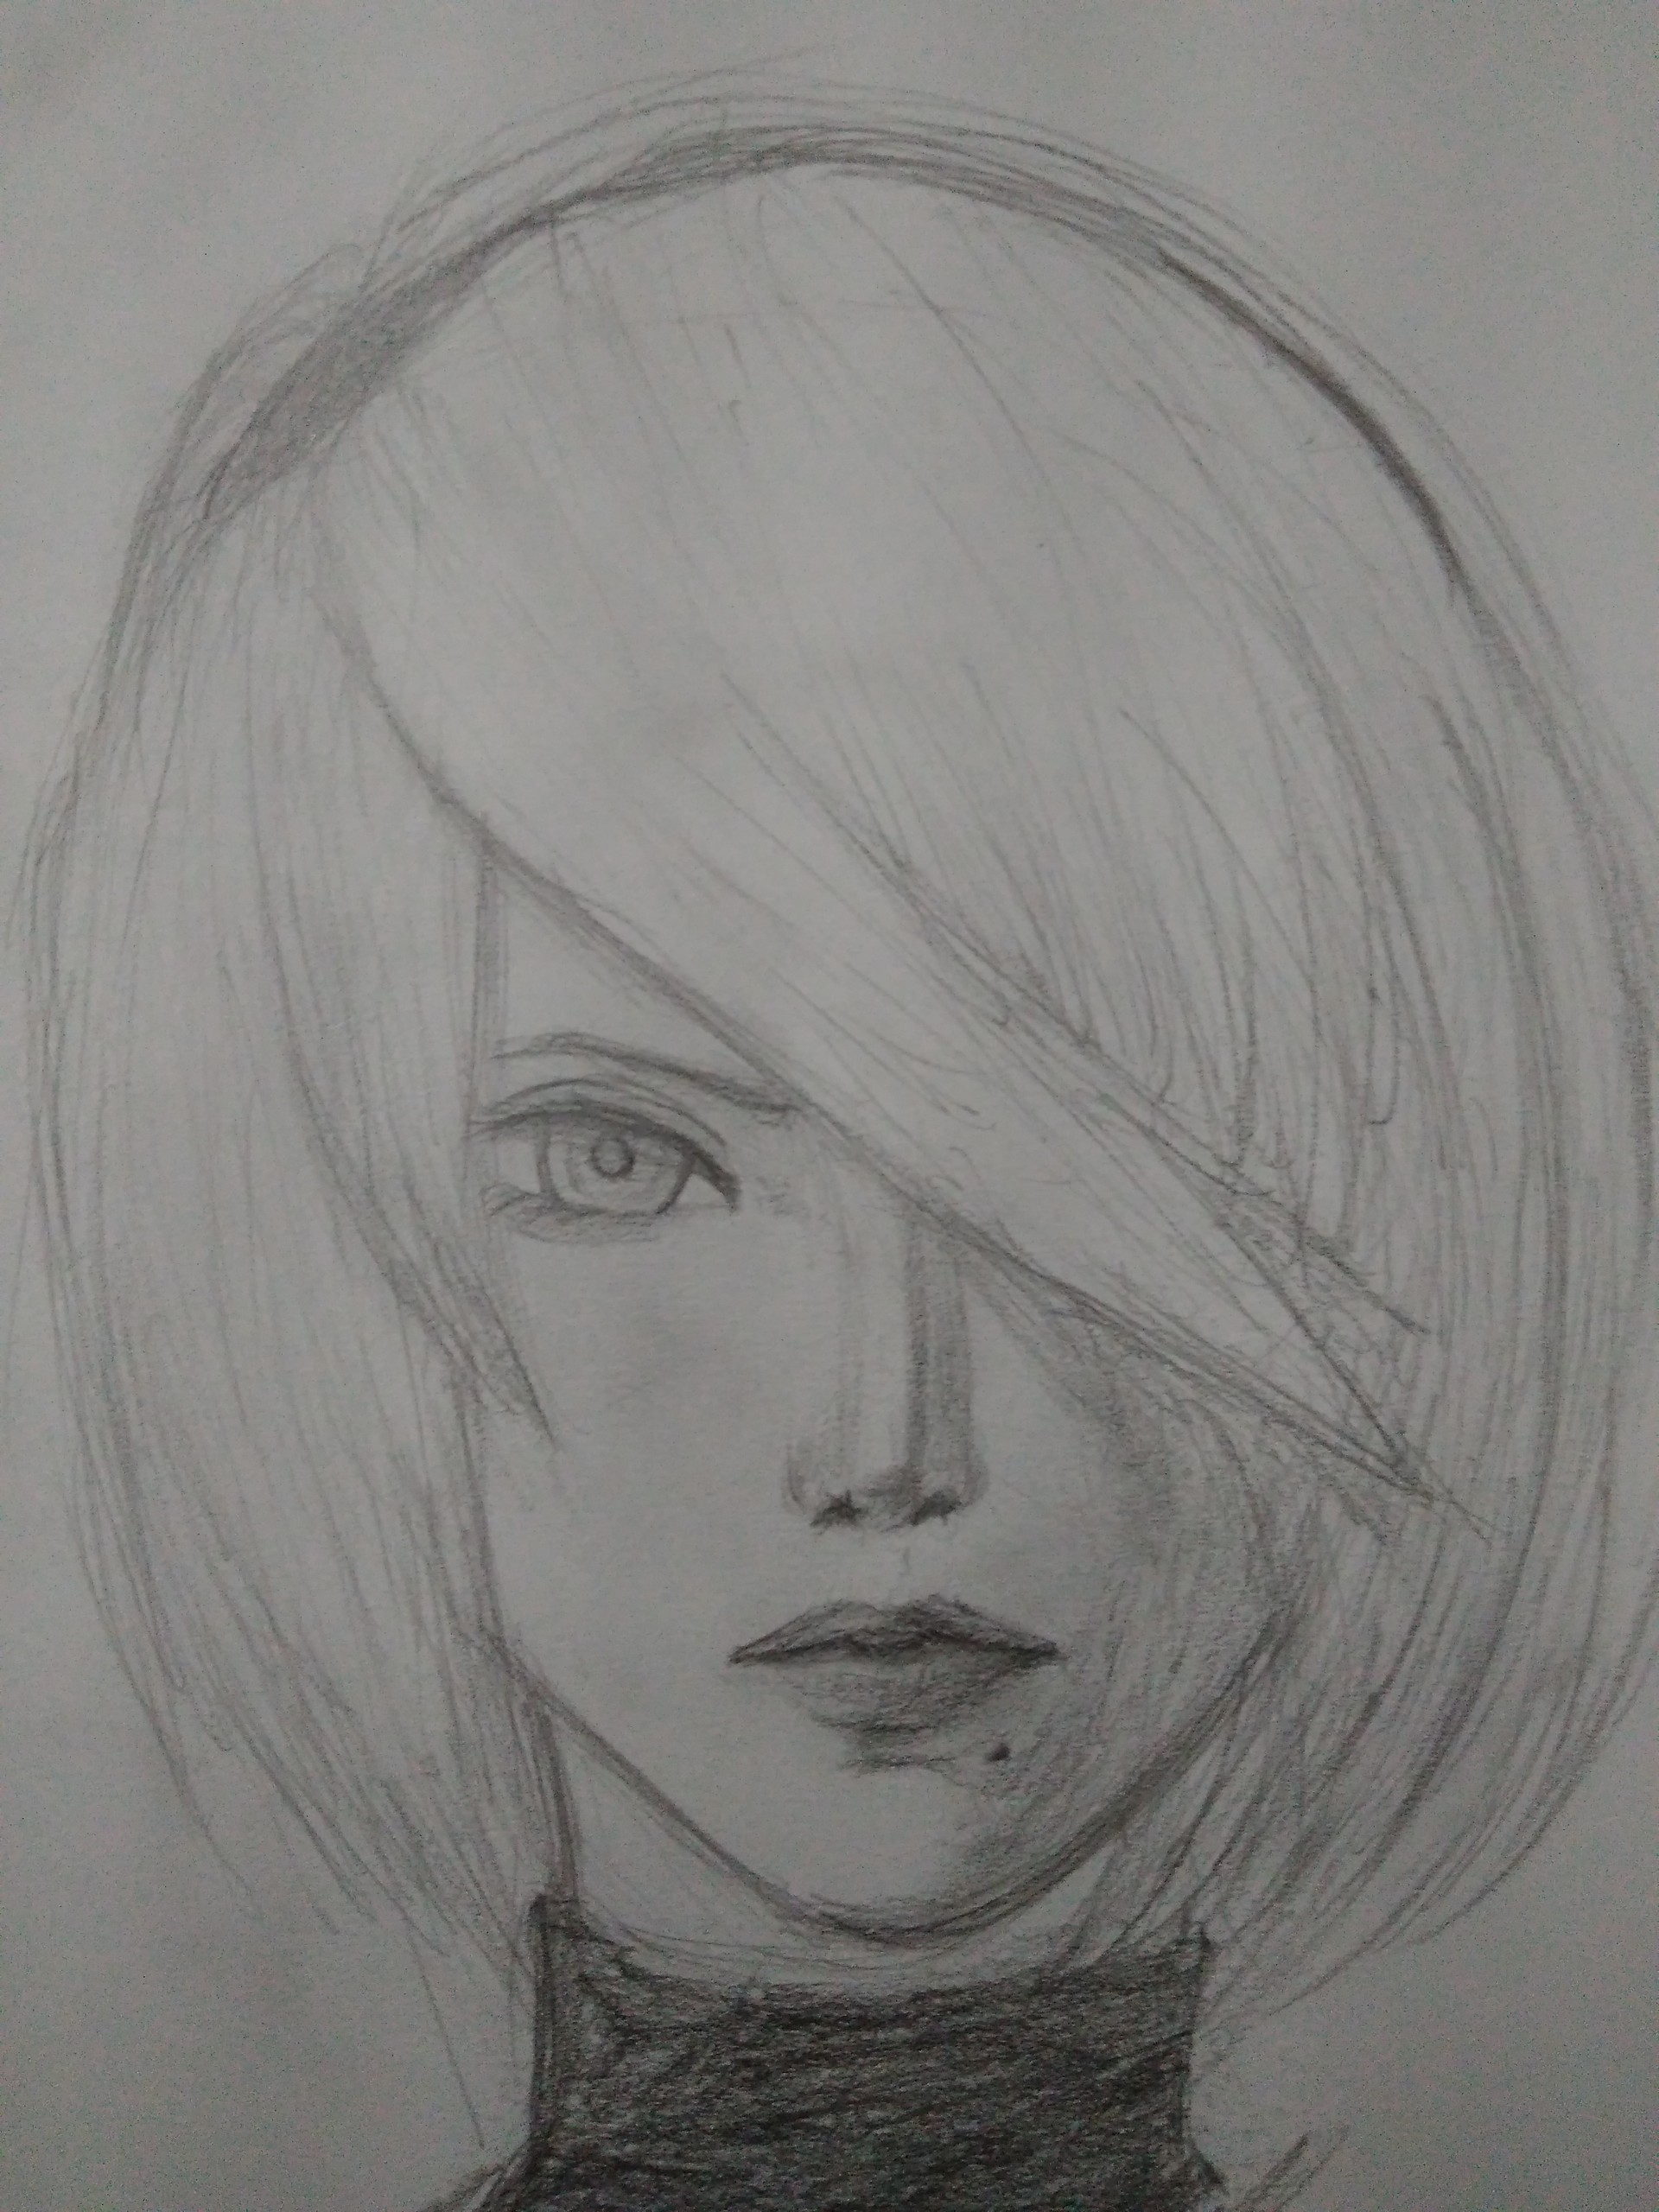 jyou white semi realistic face drawings